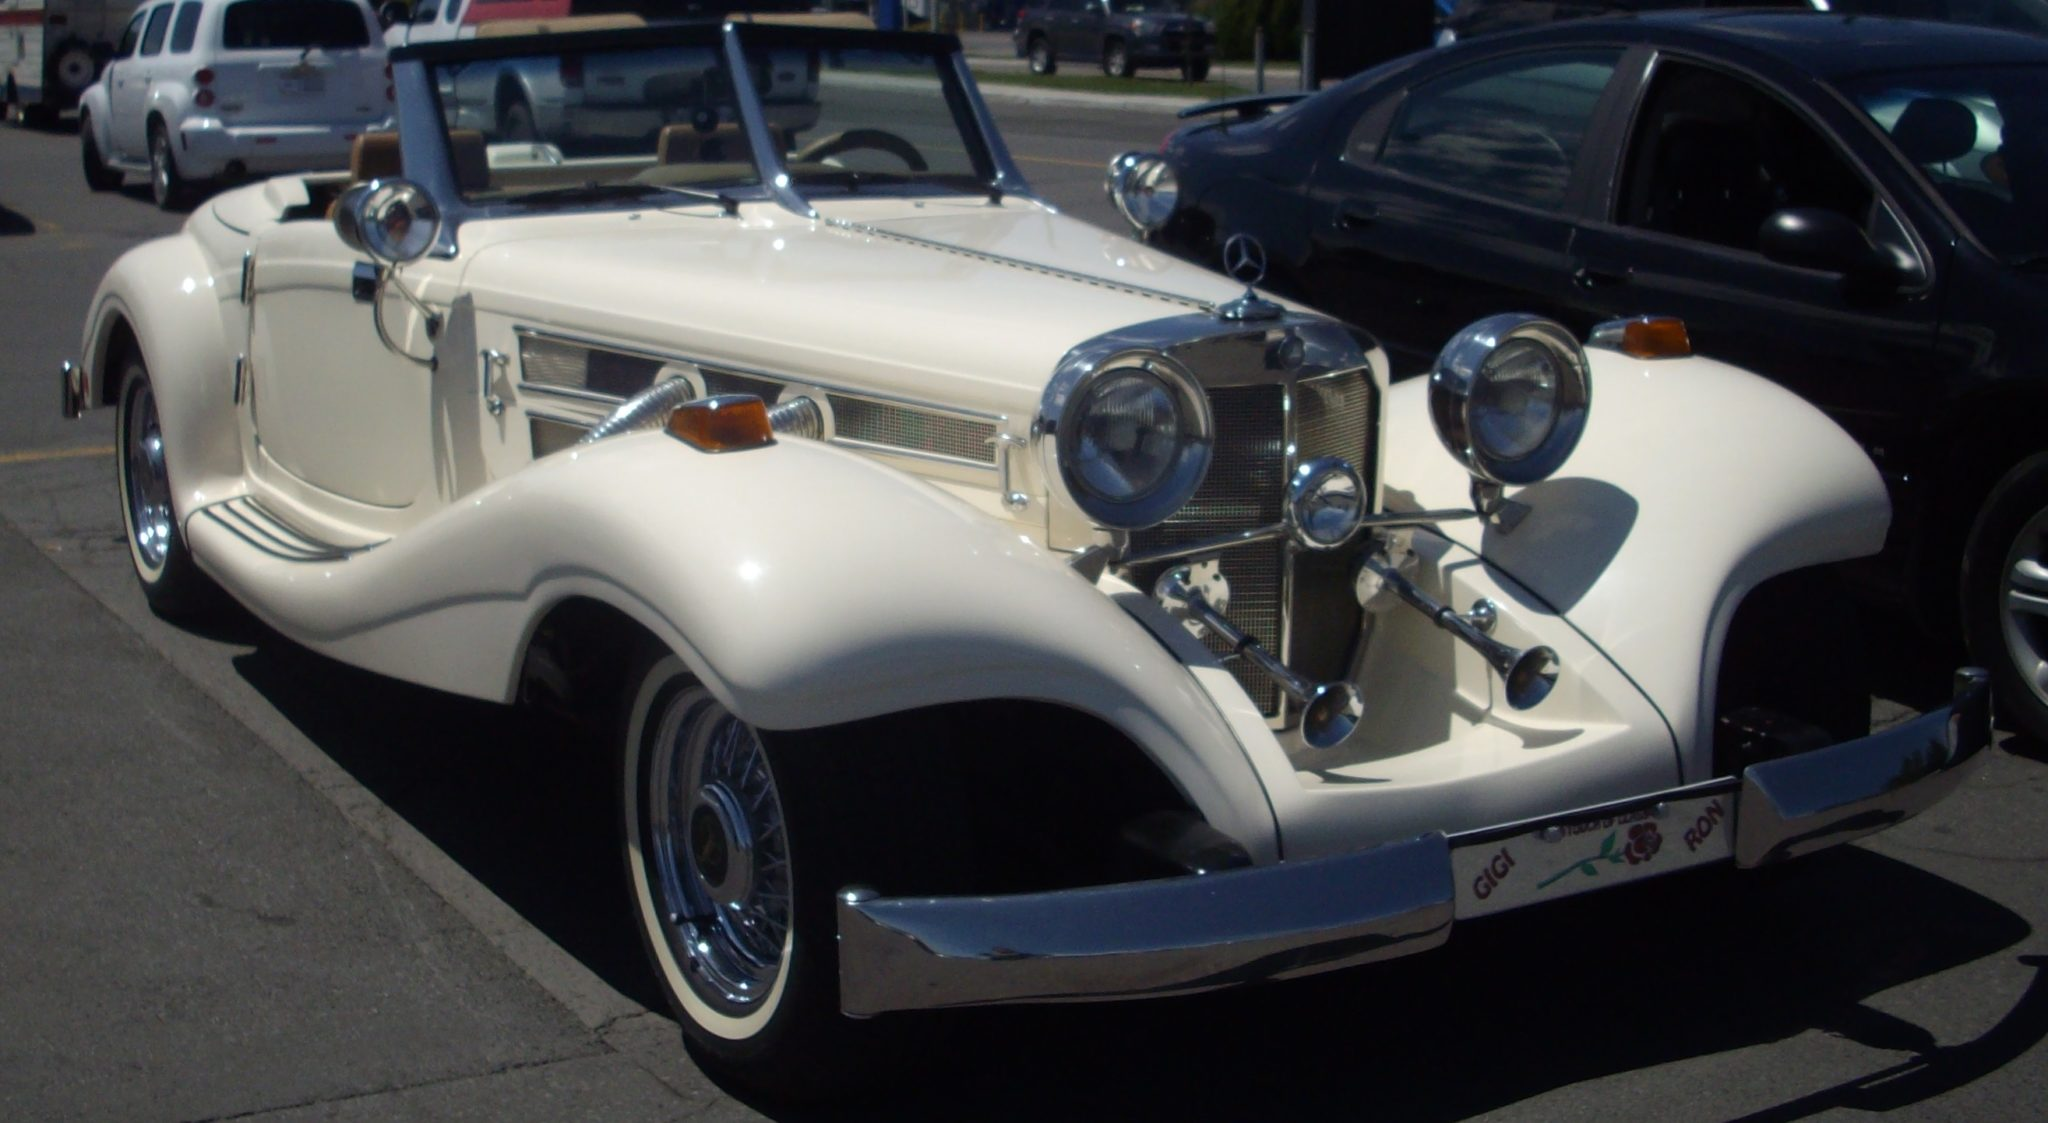 What Kind of Insurance Do I Need for a Classic Car or Kit Car?